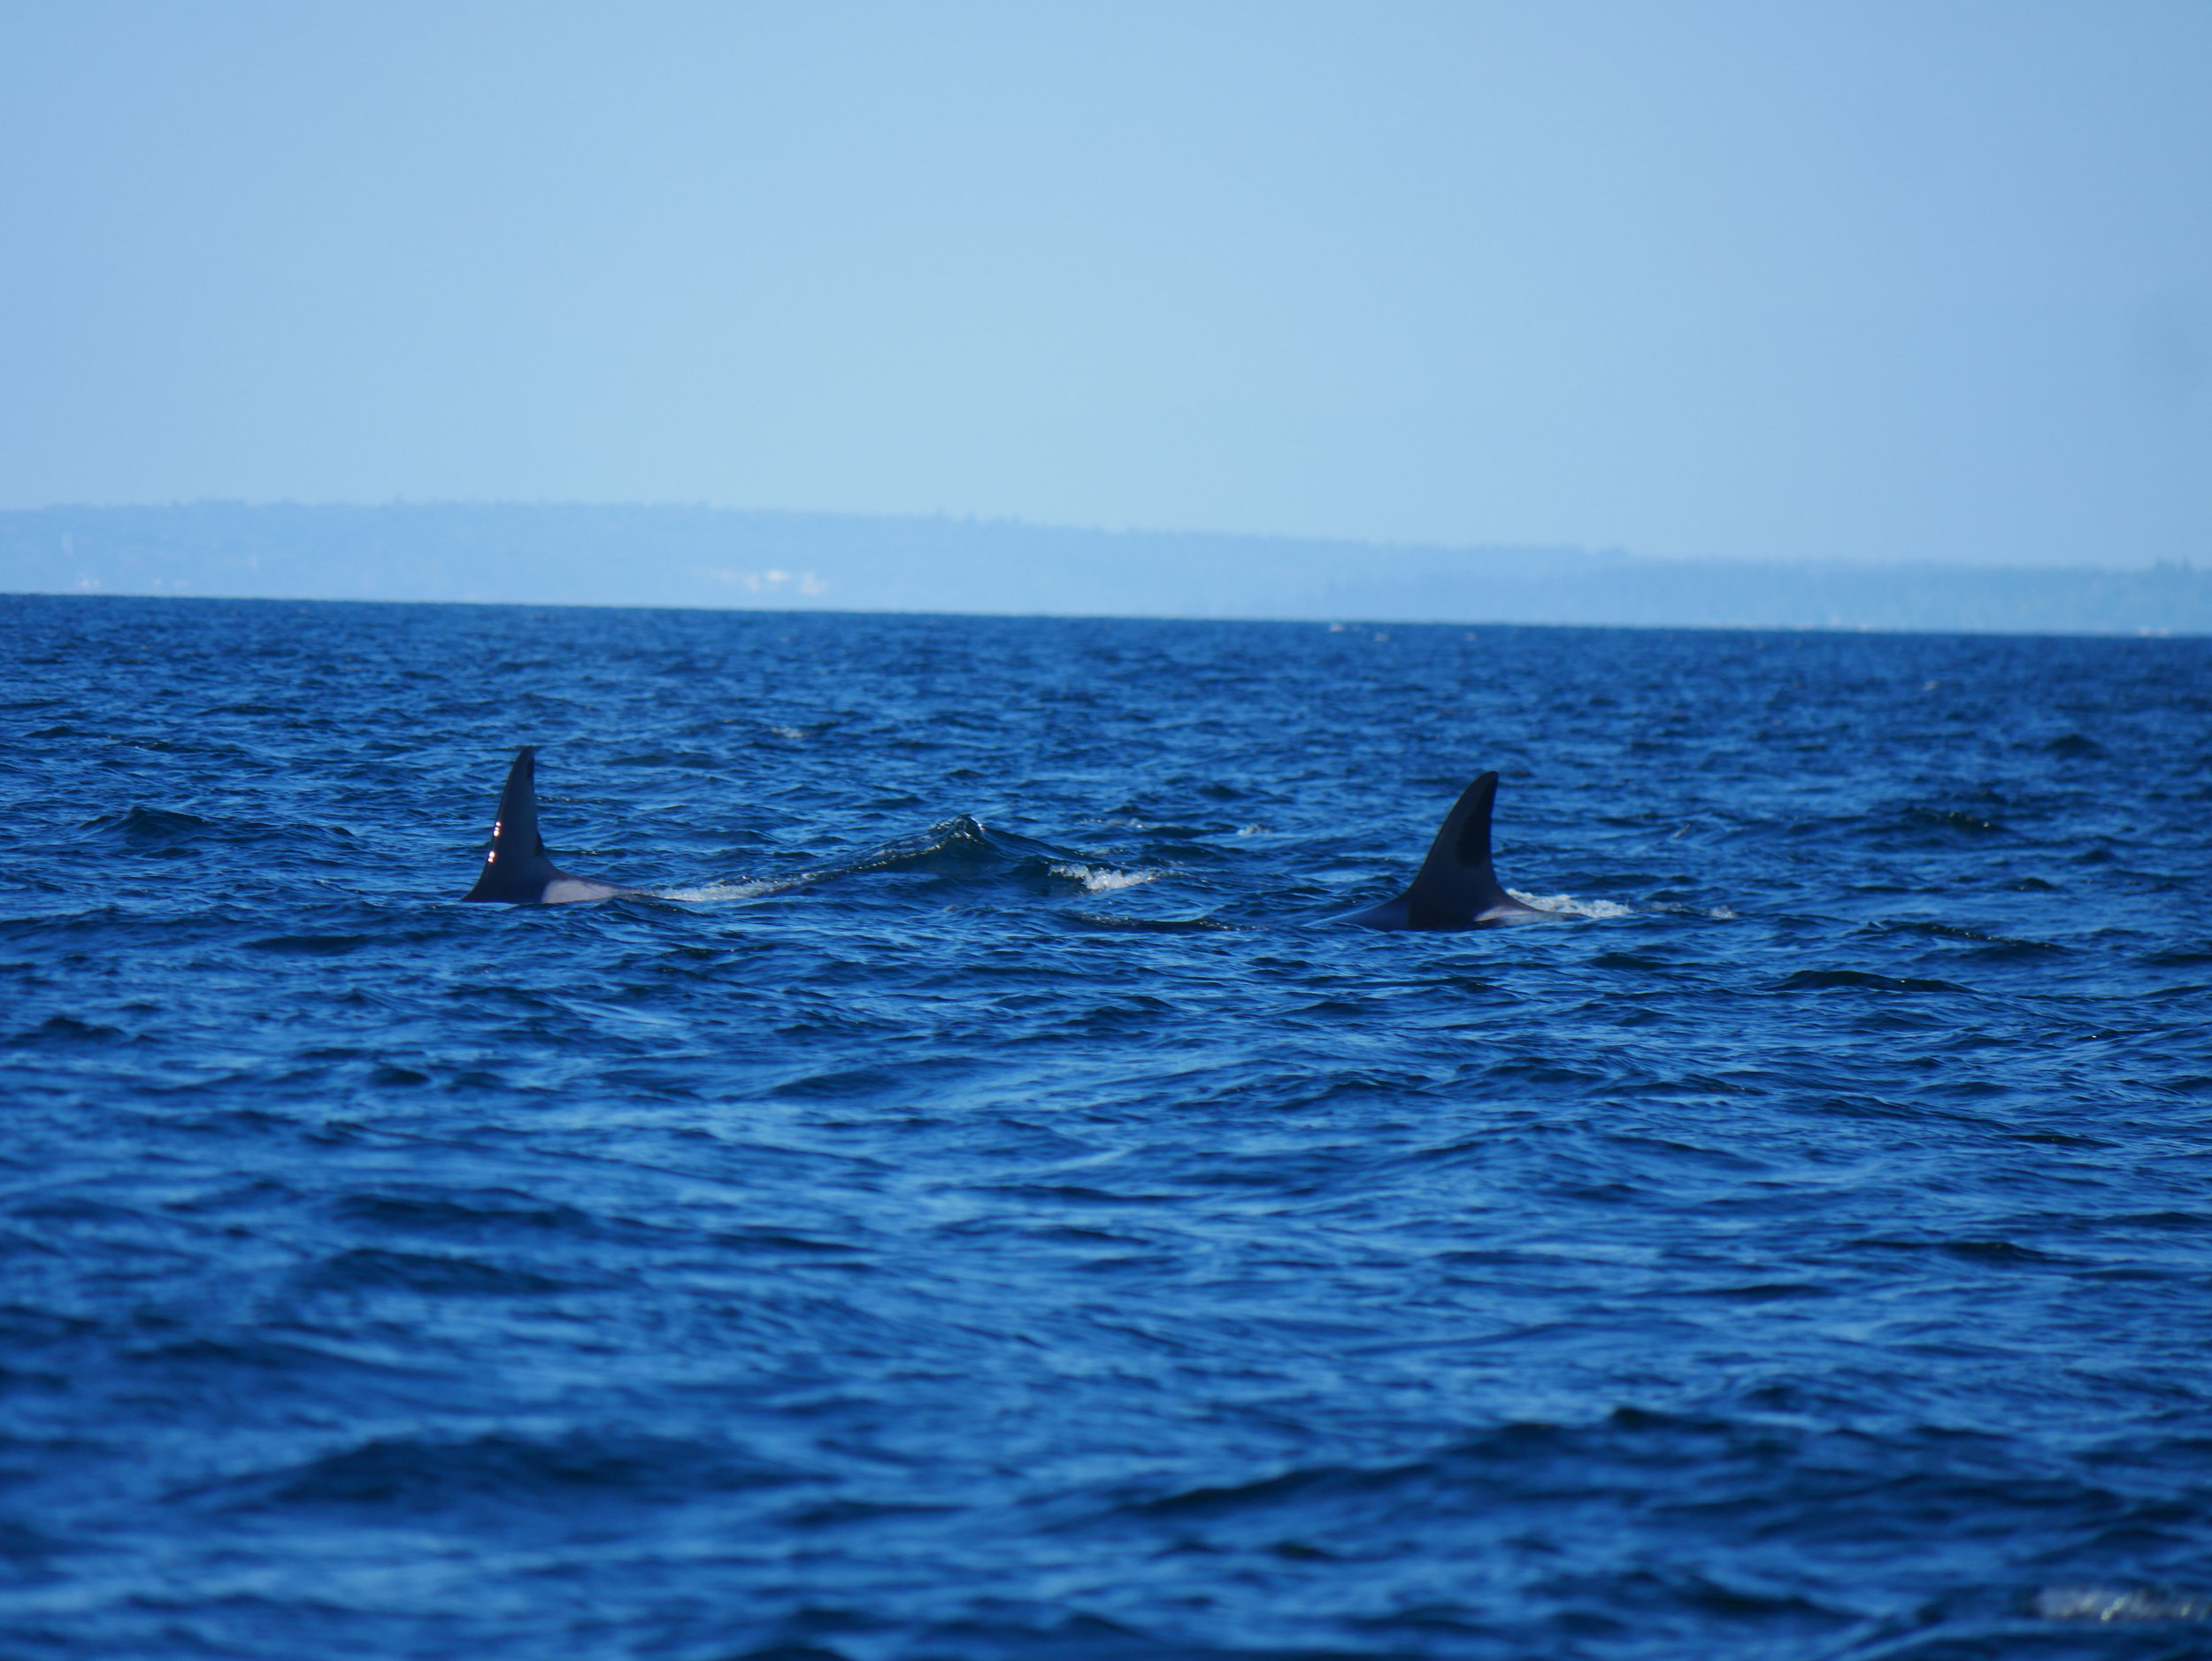 Just the ladies, T18 (Esperanza) left, and T19 (Mooya) right. These whales are aged 44 and 49, respectively. Photo by Val Watson.